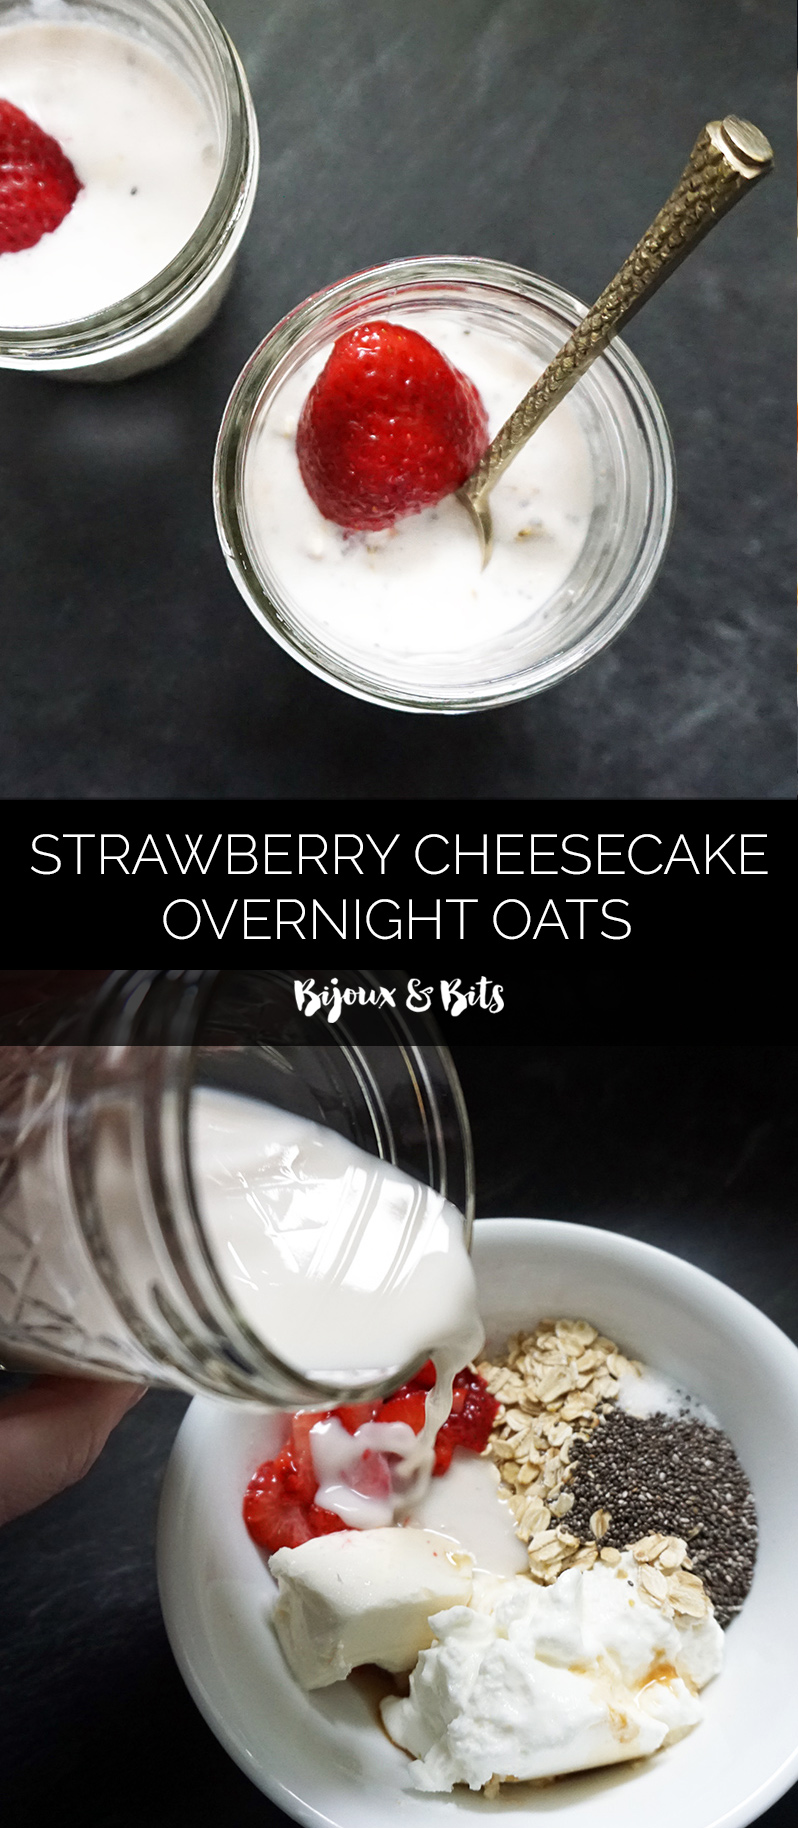 Strawberry cheesecake overnight oats from @bijouxandbits #overnightoats